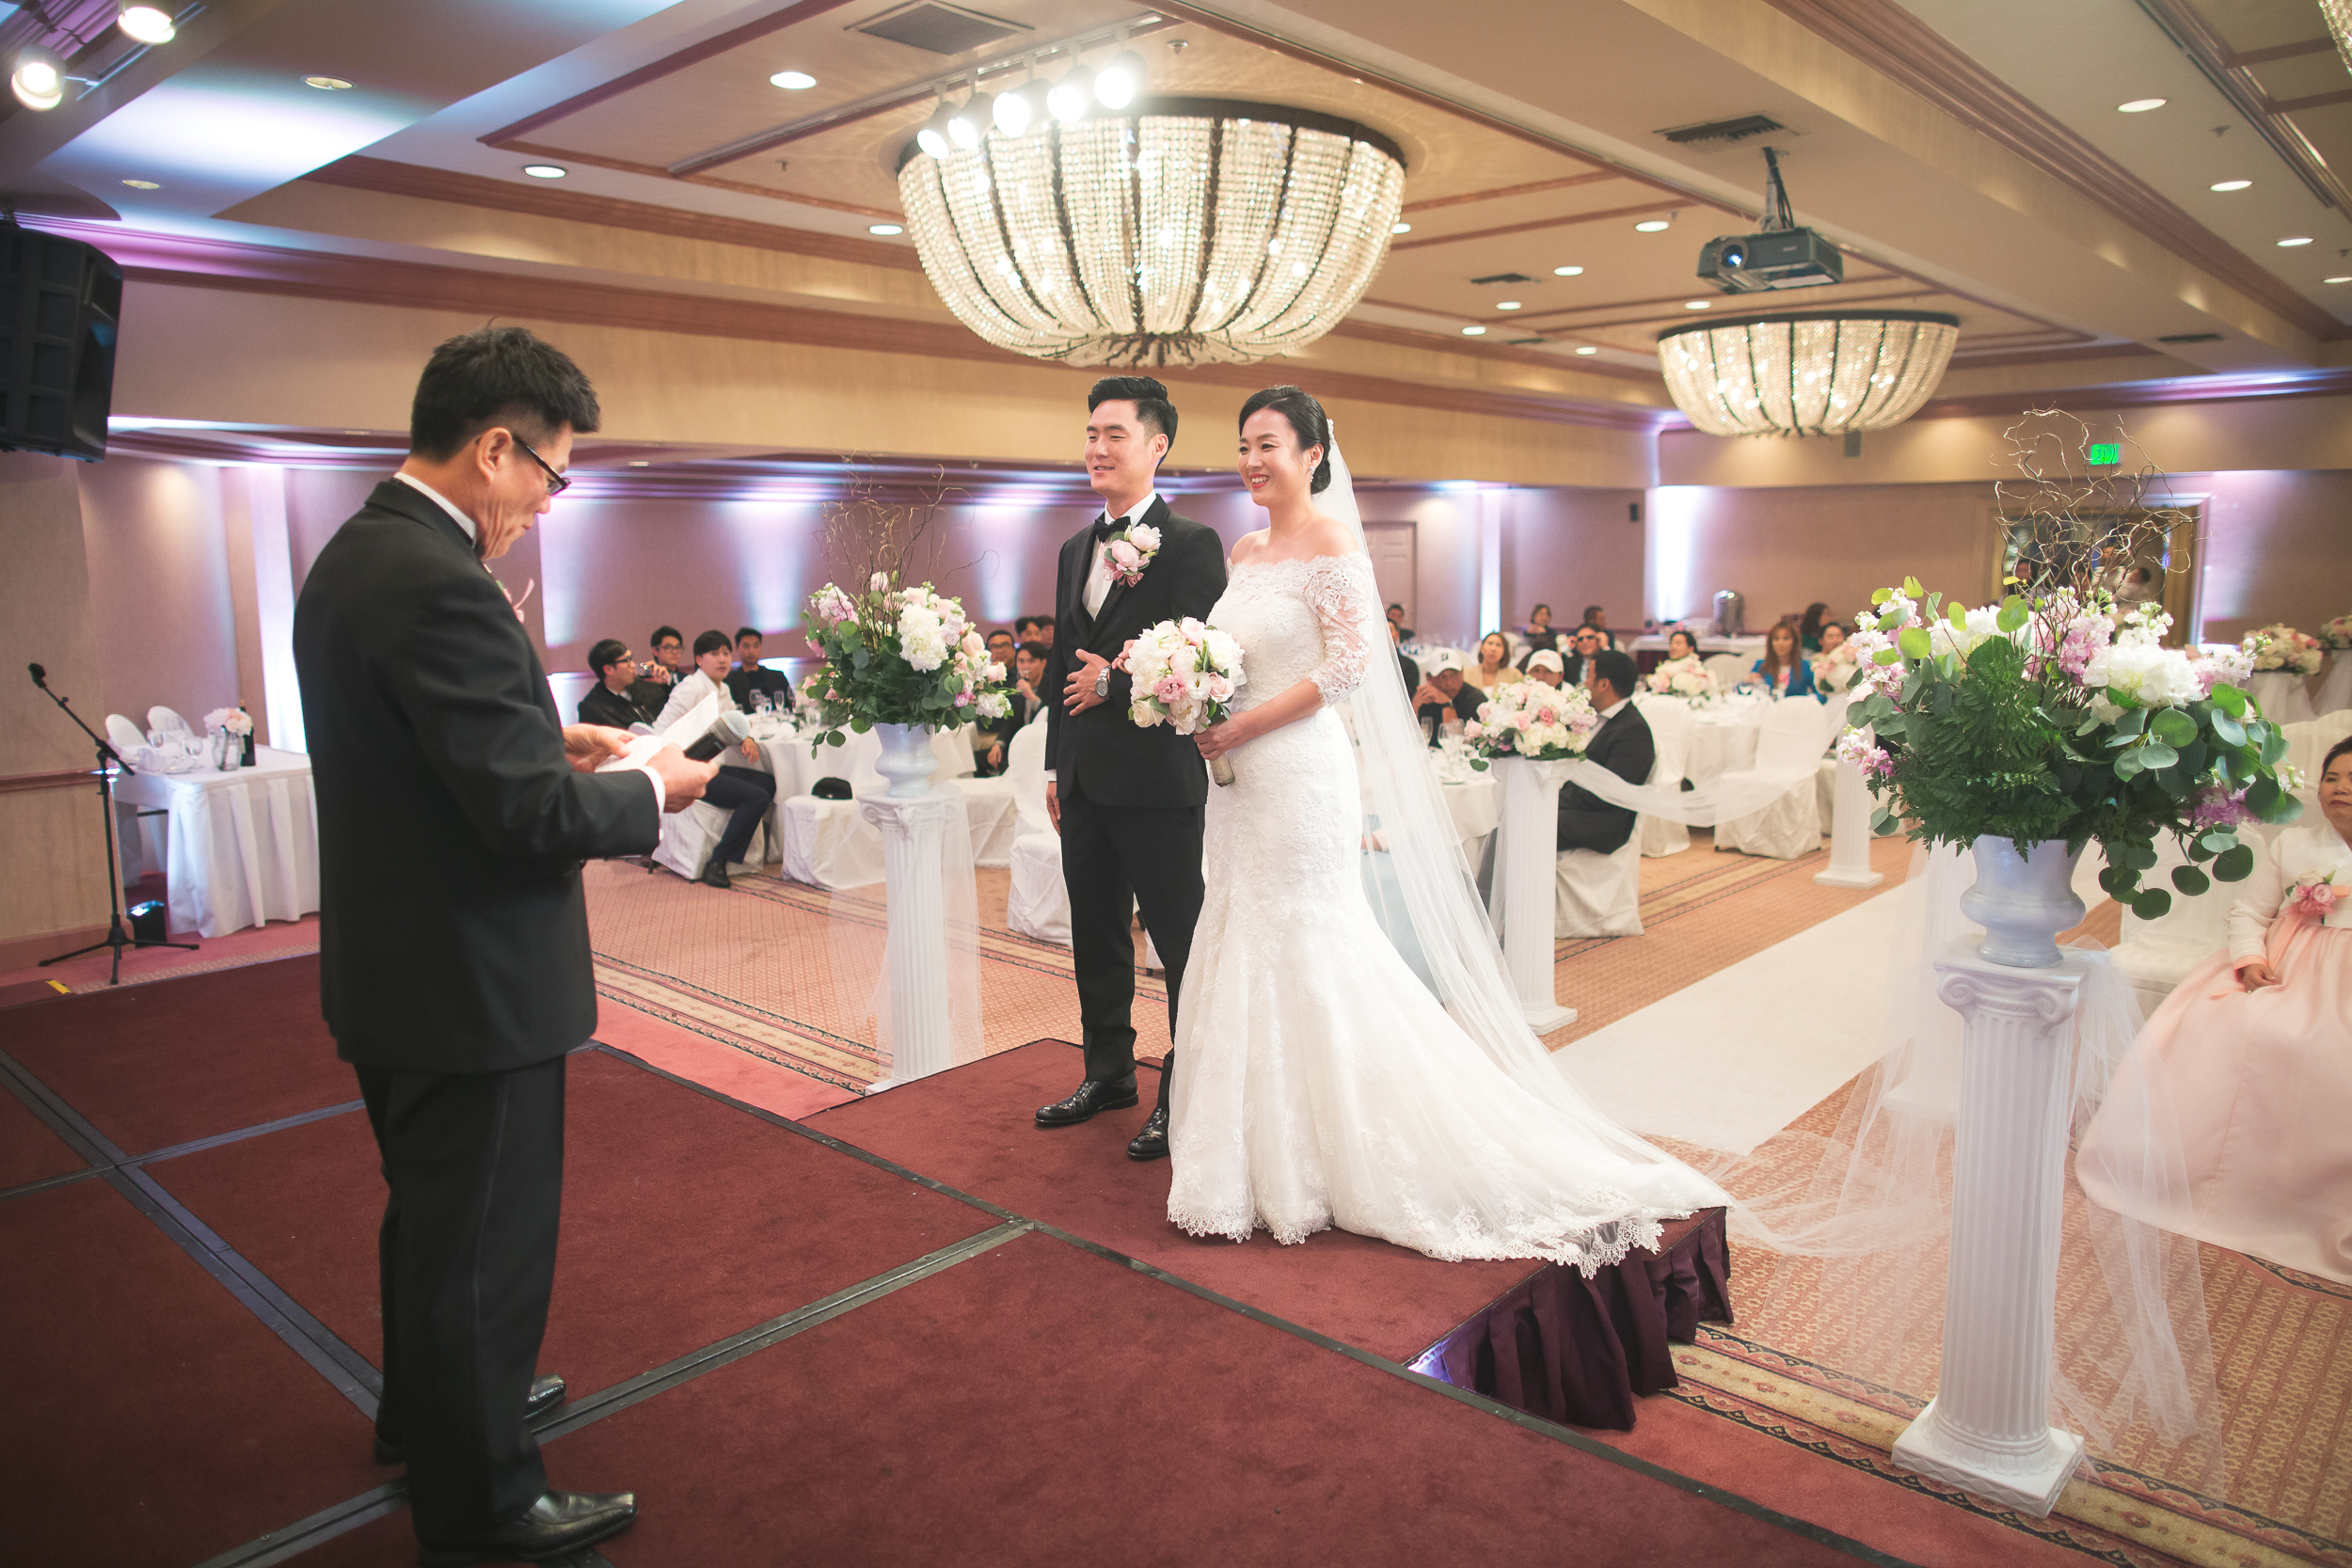 56_Ji Young Choi & Kyungmin Song Wedding